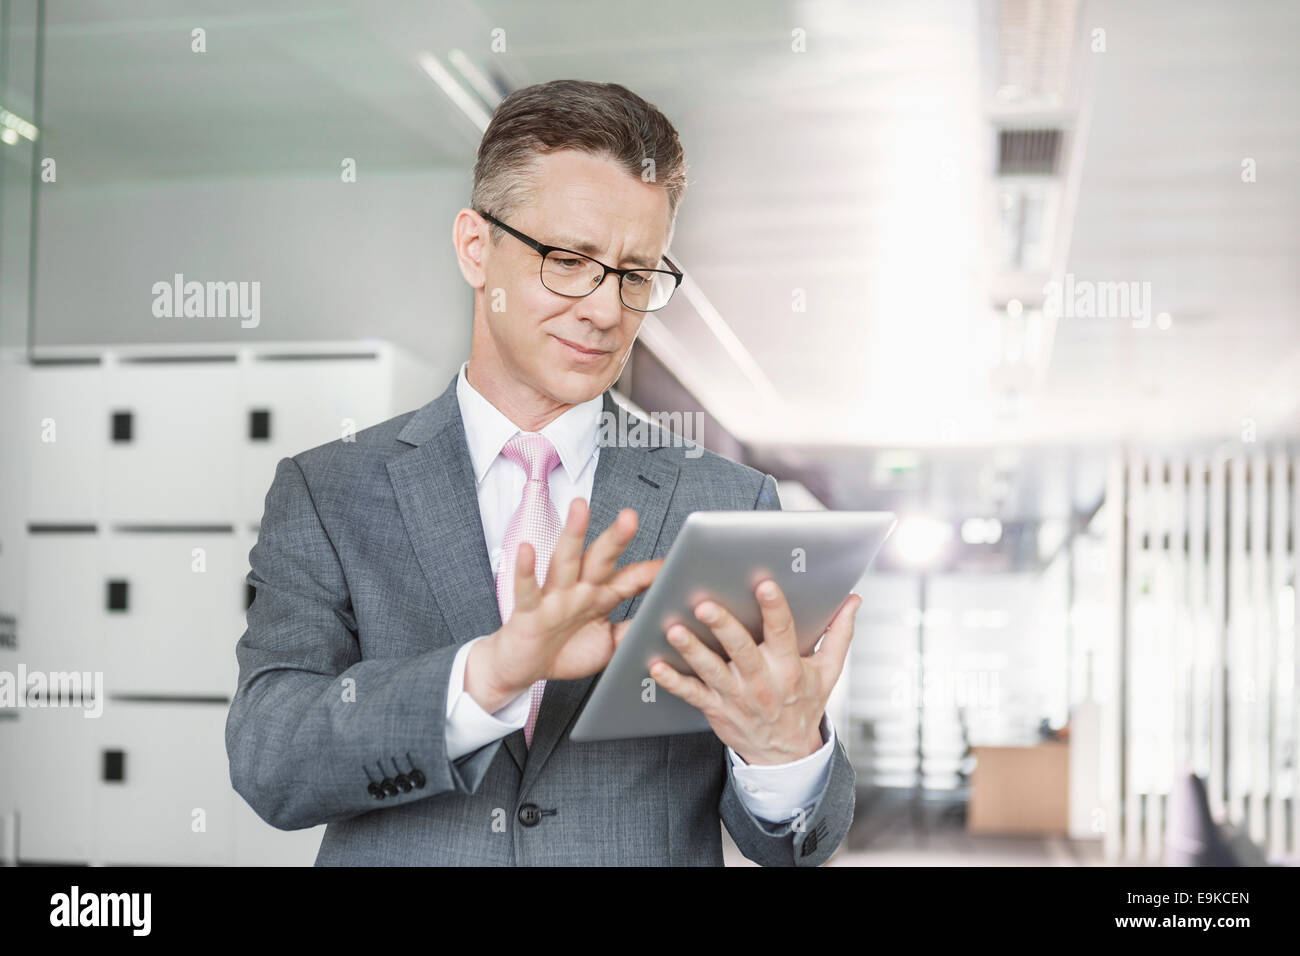 Young businesswoman using copy machine in office Photo Stock